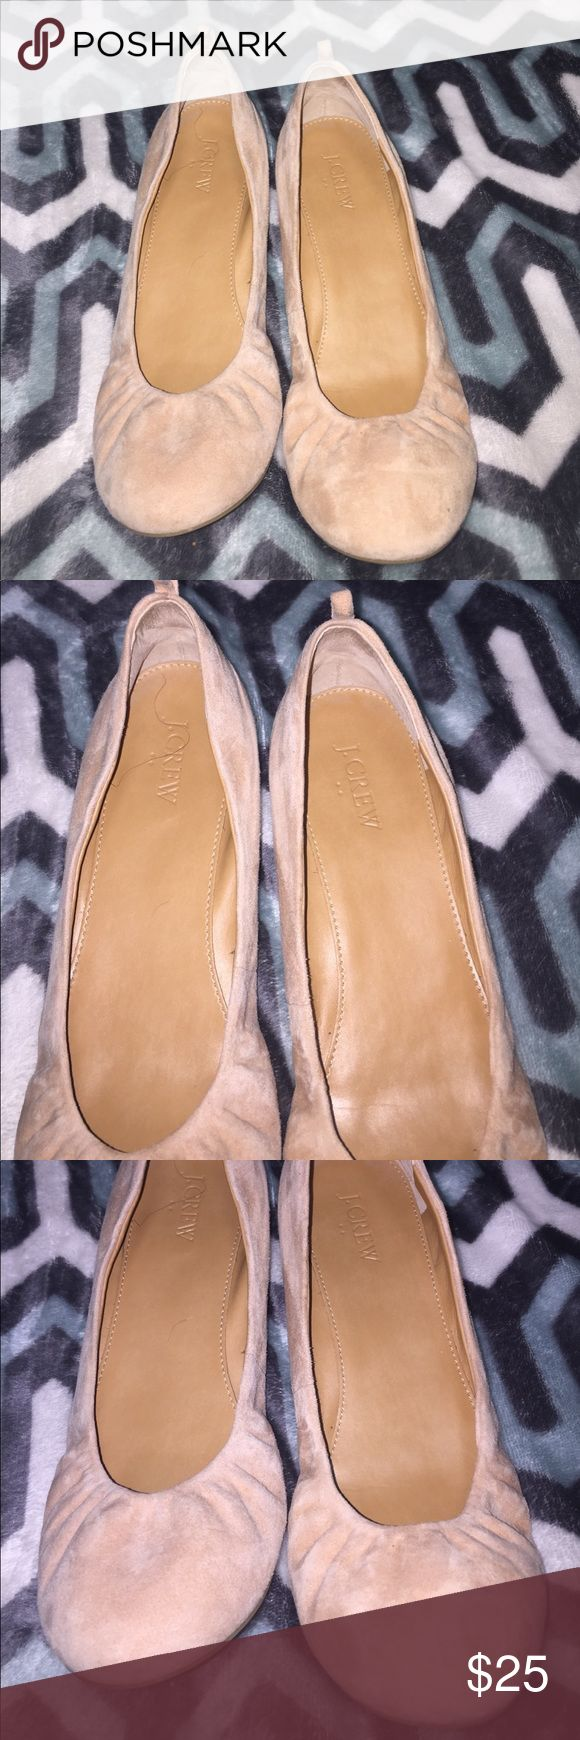 J.Crew Blush Ballerina Slippers Only worn once and in perfect condition... must have new blush color. 😍STUNNING🔥 J. Crew Shoes